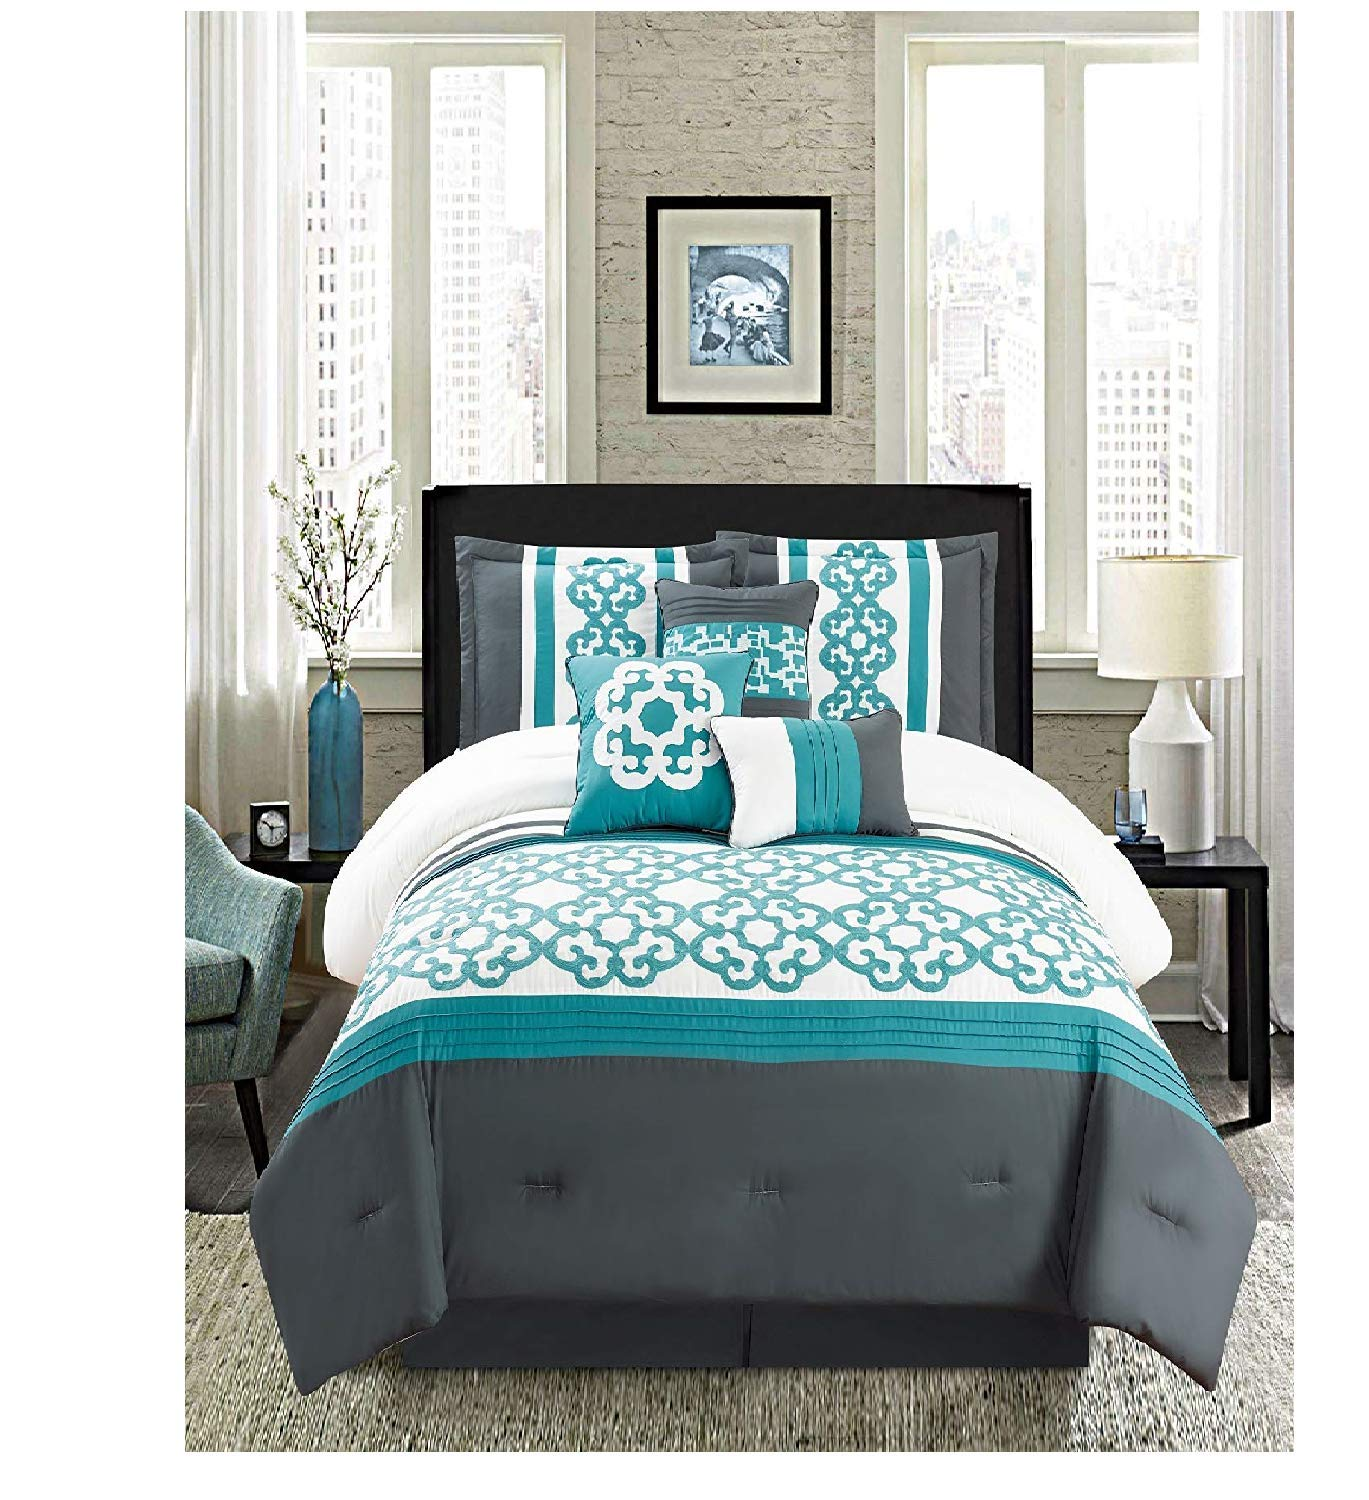 Golden Linens Turquoise White7 Pcs Embroidery Comforter Set (King)